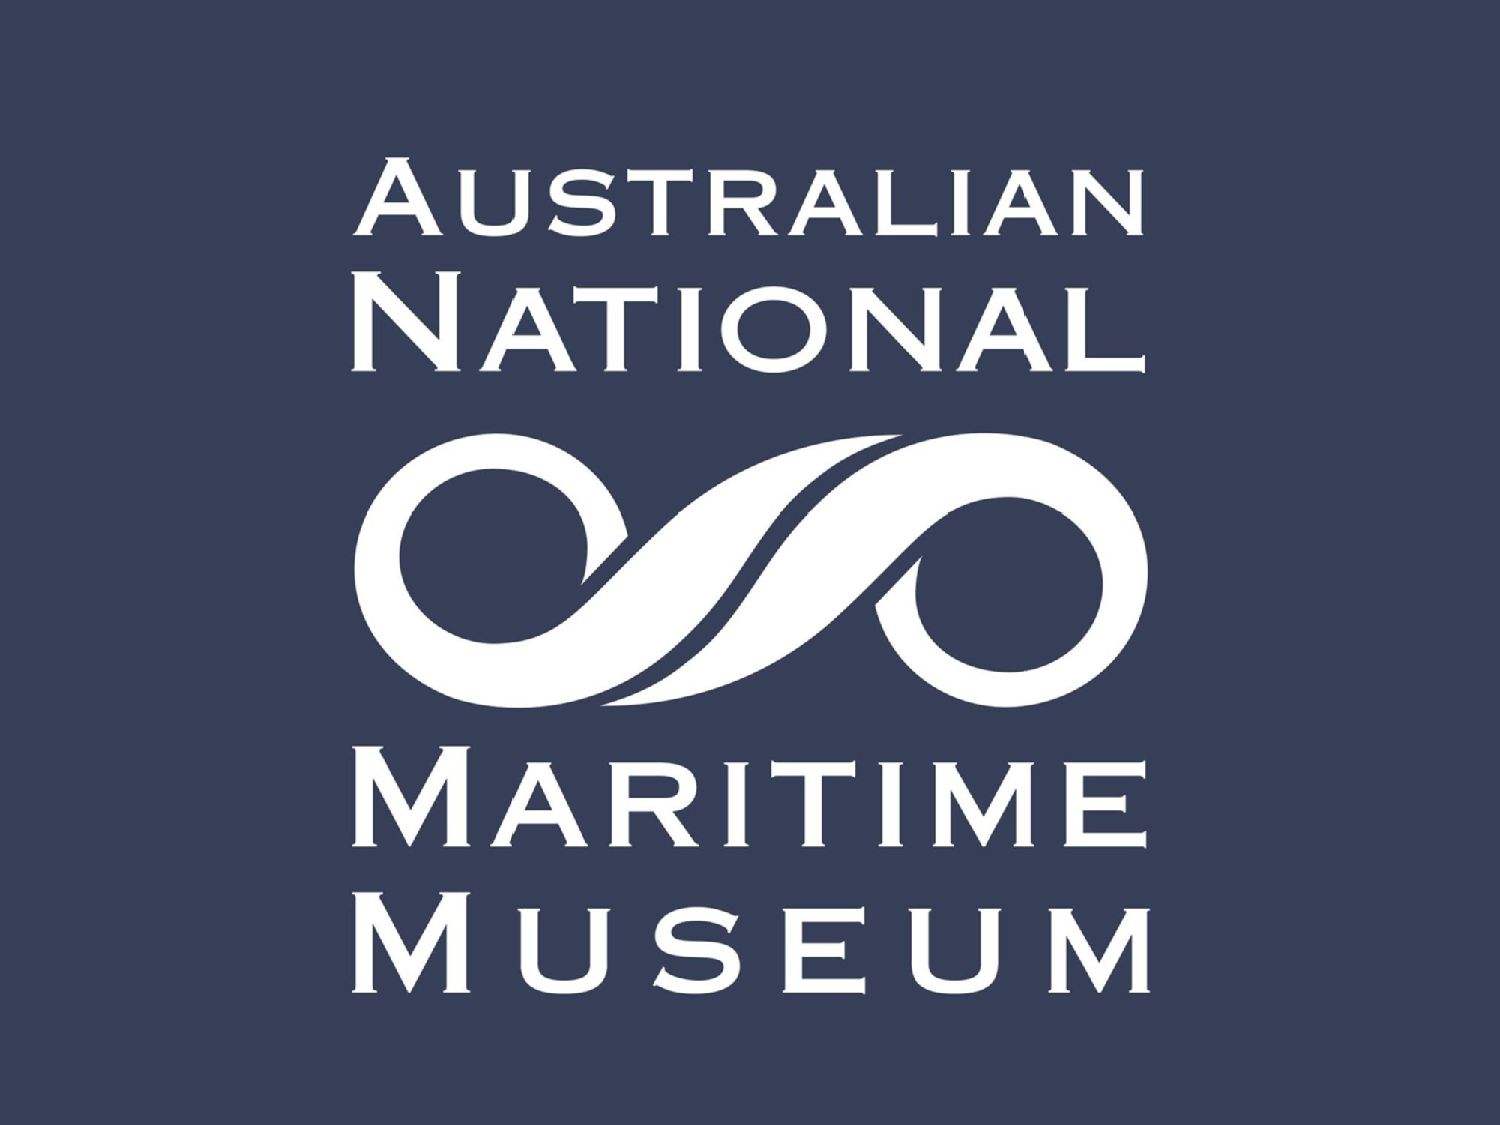 National Maritime Museum in Sydney